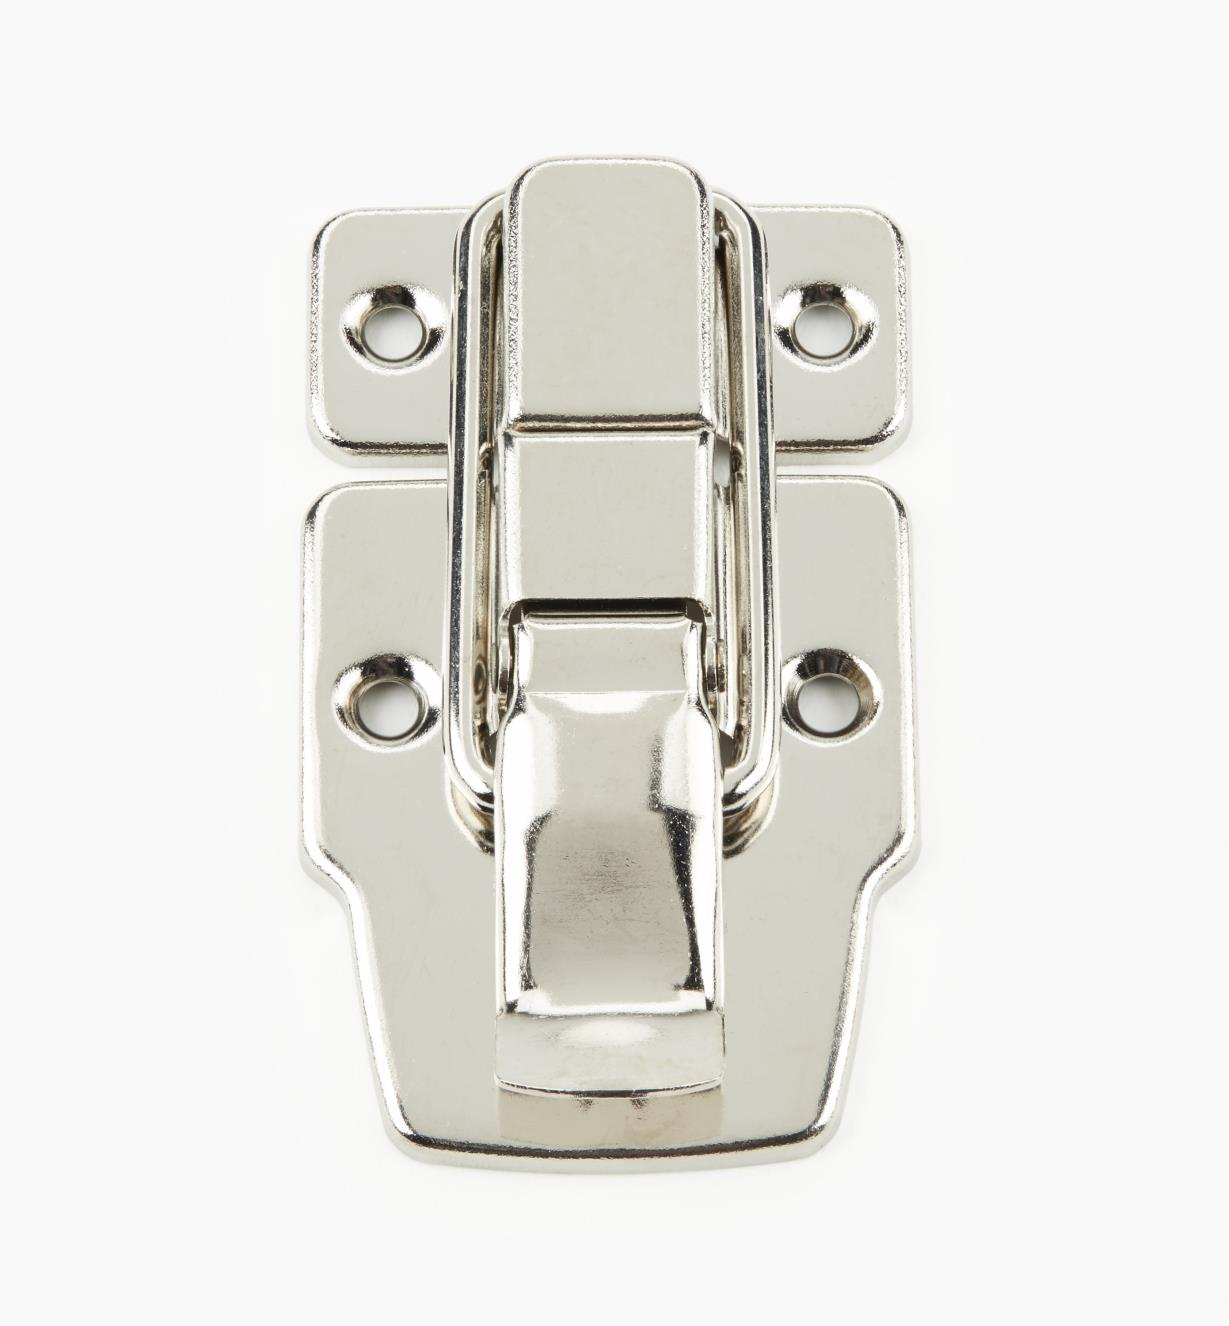 00S5541 - Nickel Plate Latch